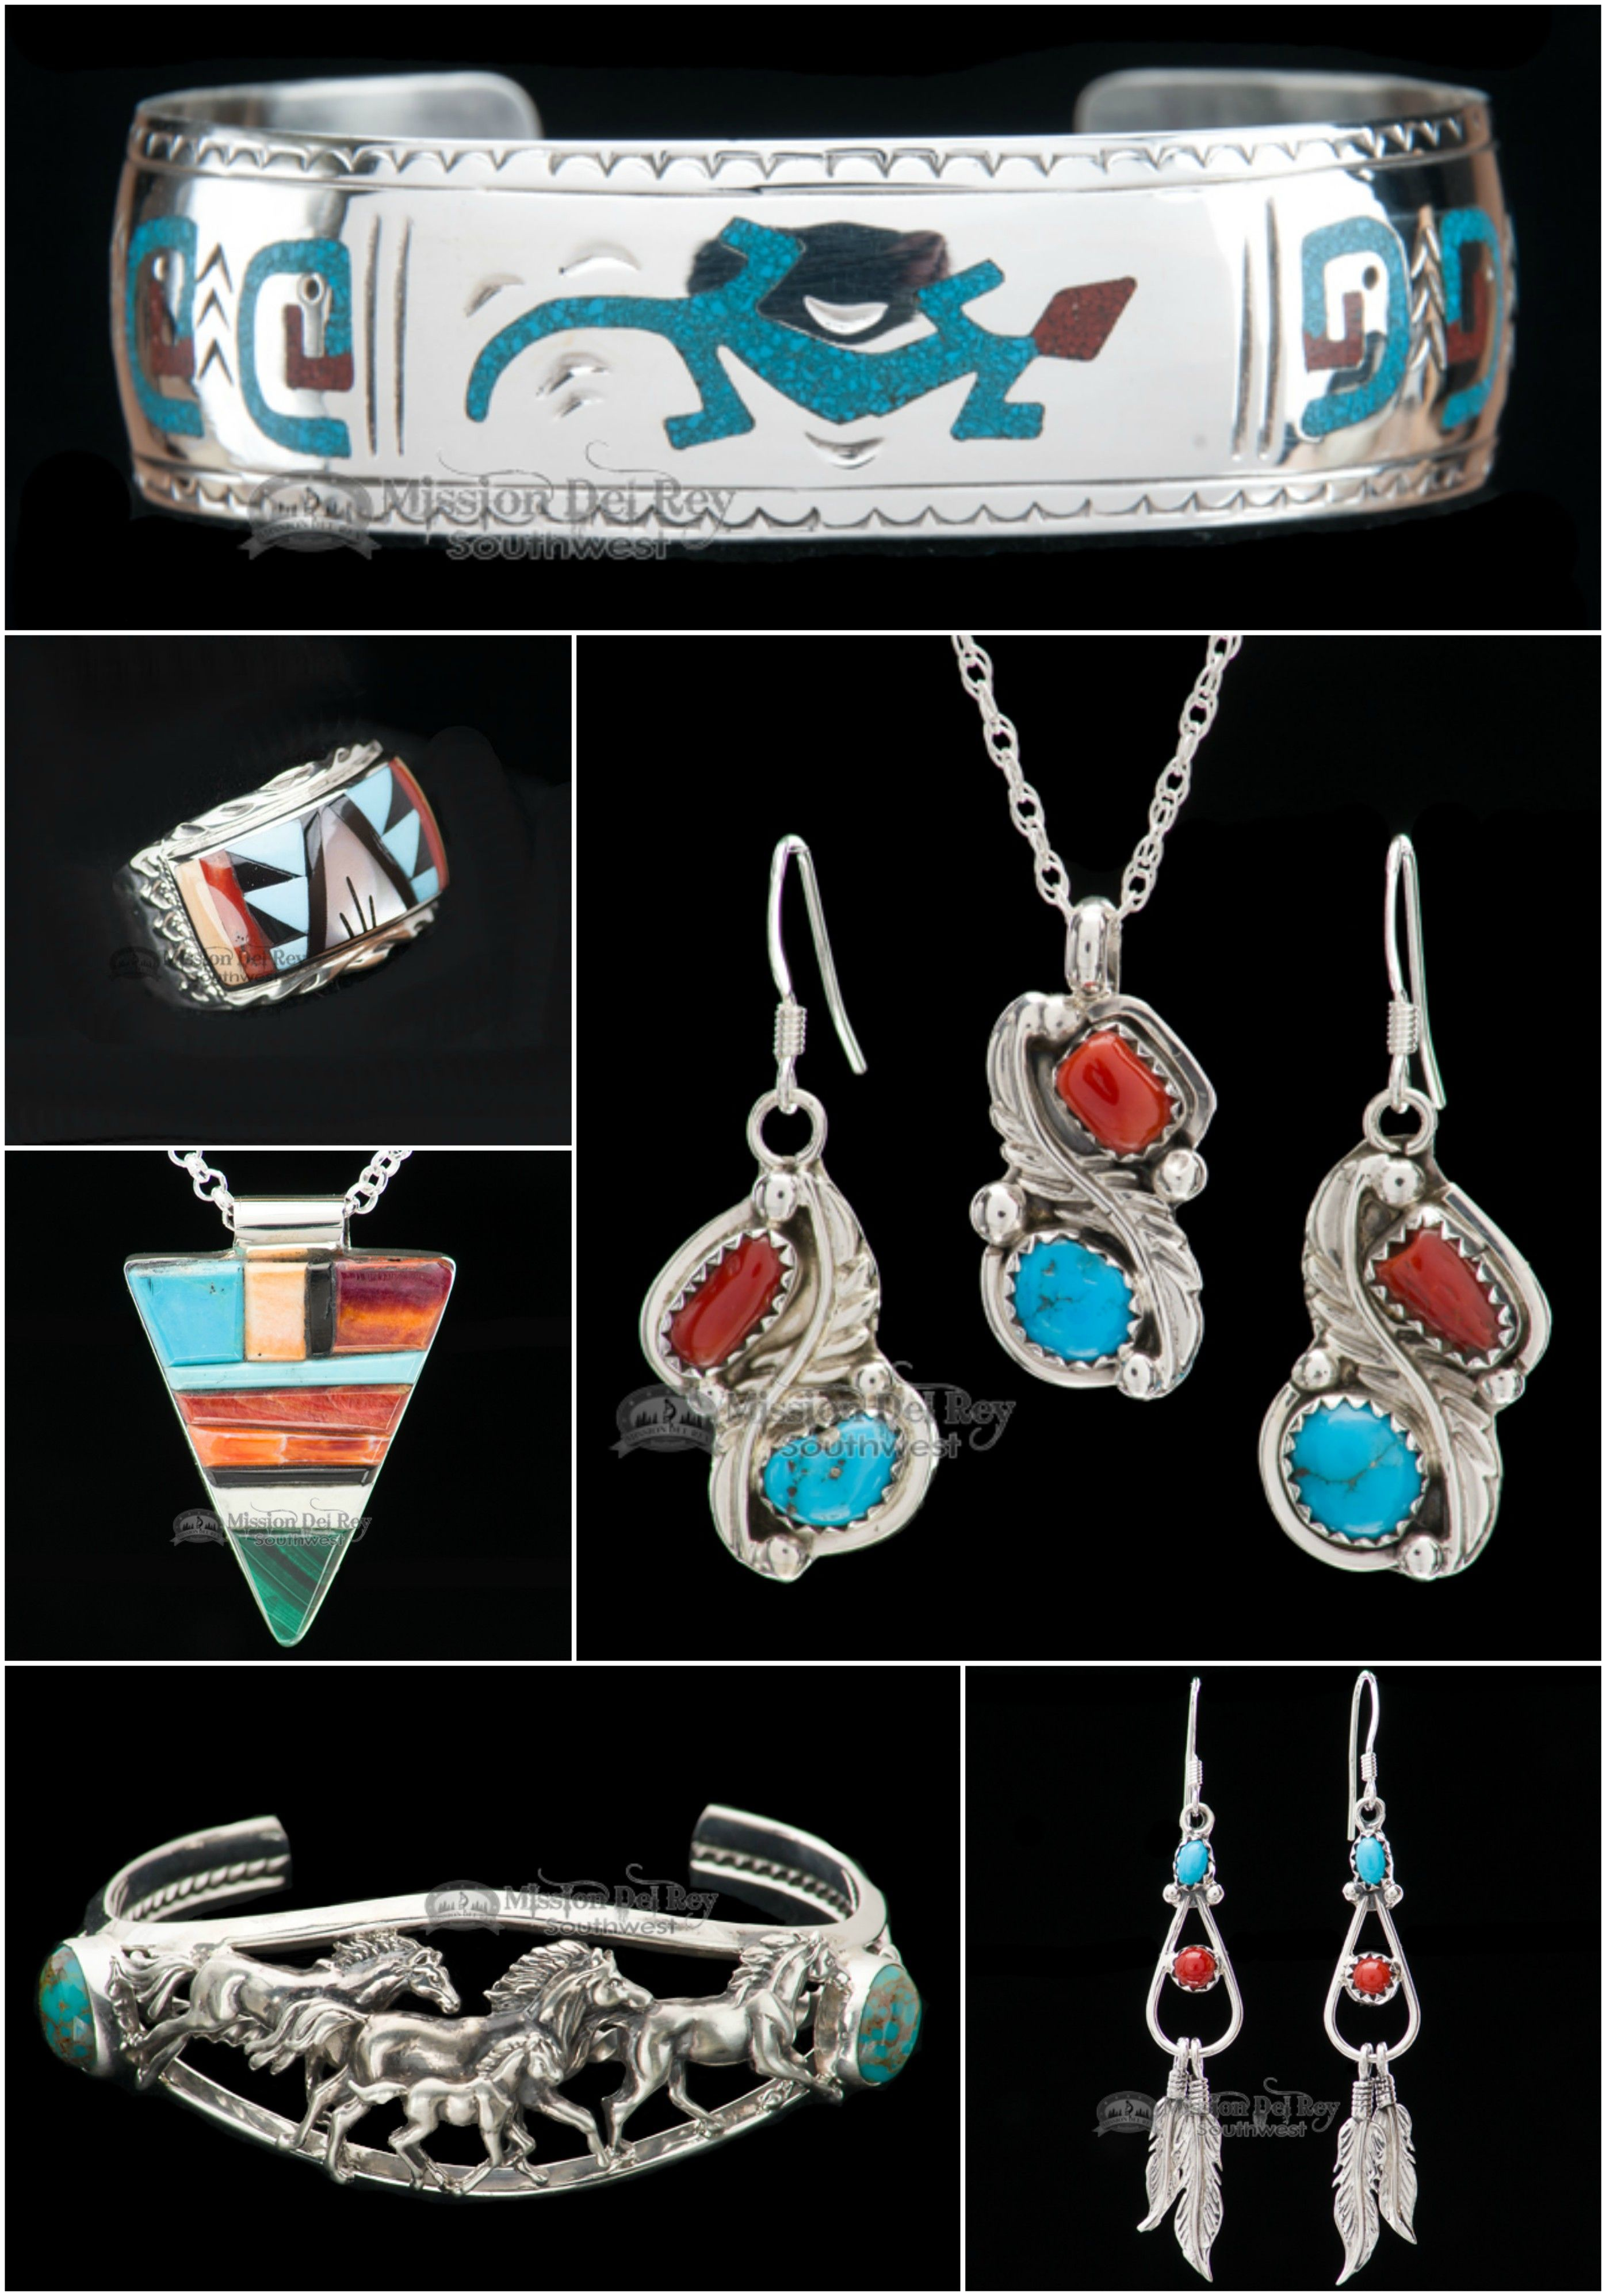 Native american jewelry reflects the cultural diversity and history native american jewelry is genuine sterling silver and turquoise jewelry by native americans in classic indian navajo zuni styles buycottarizona Images